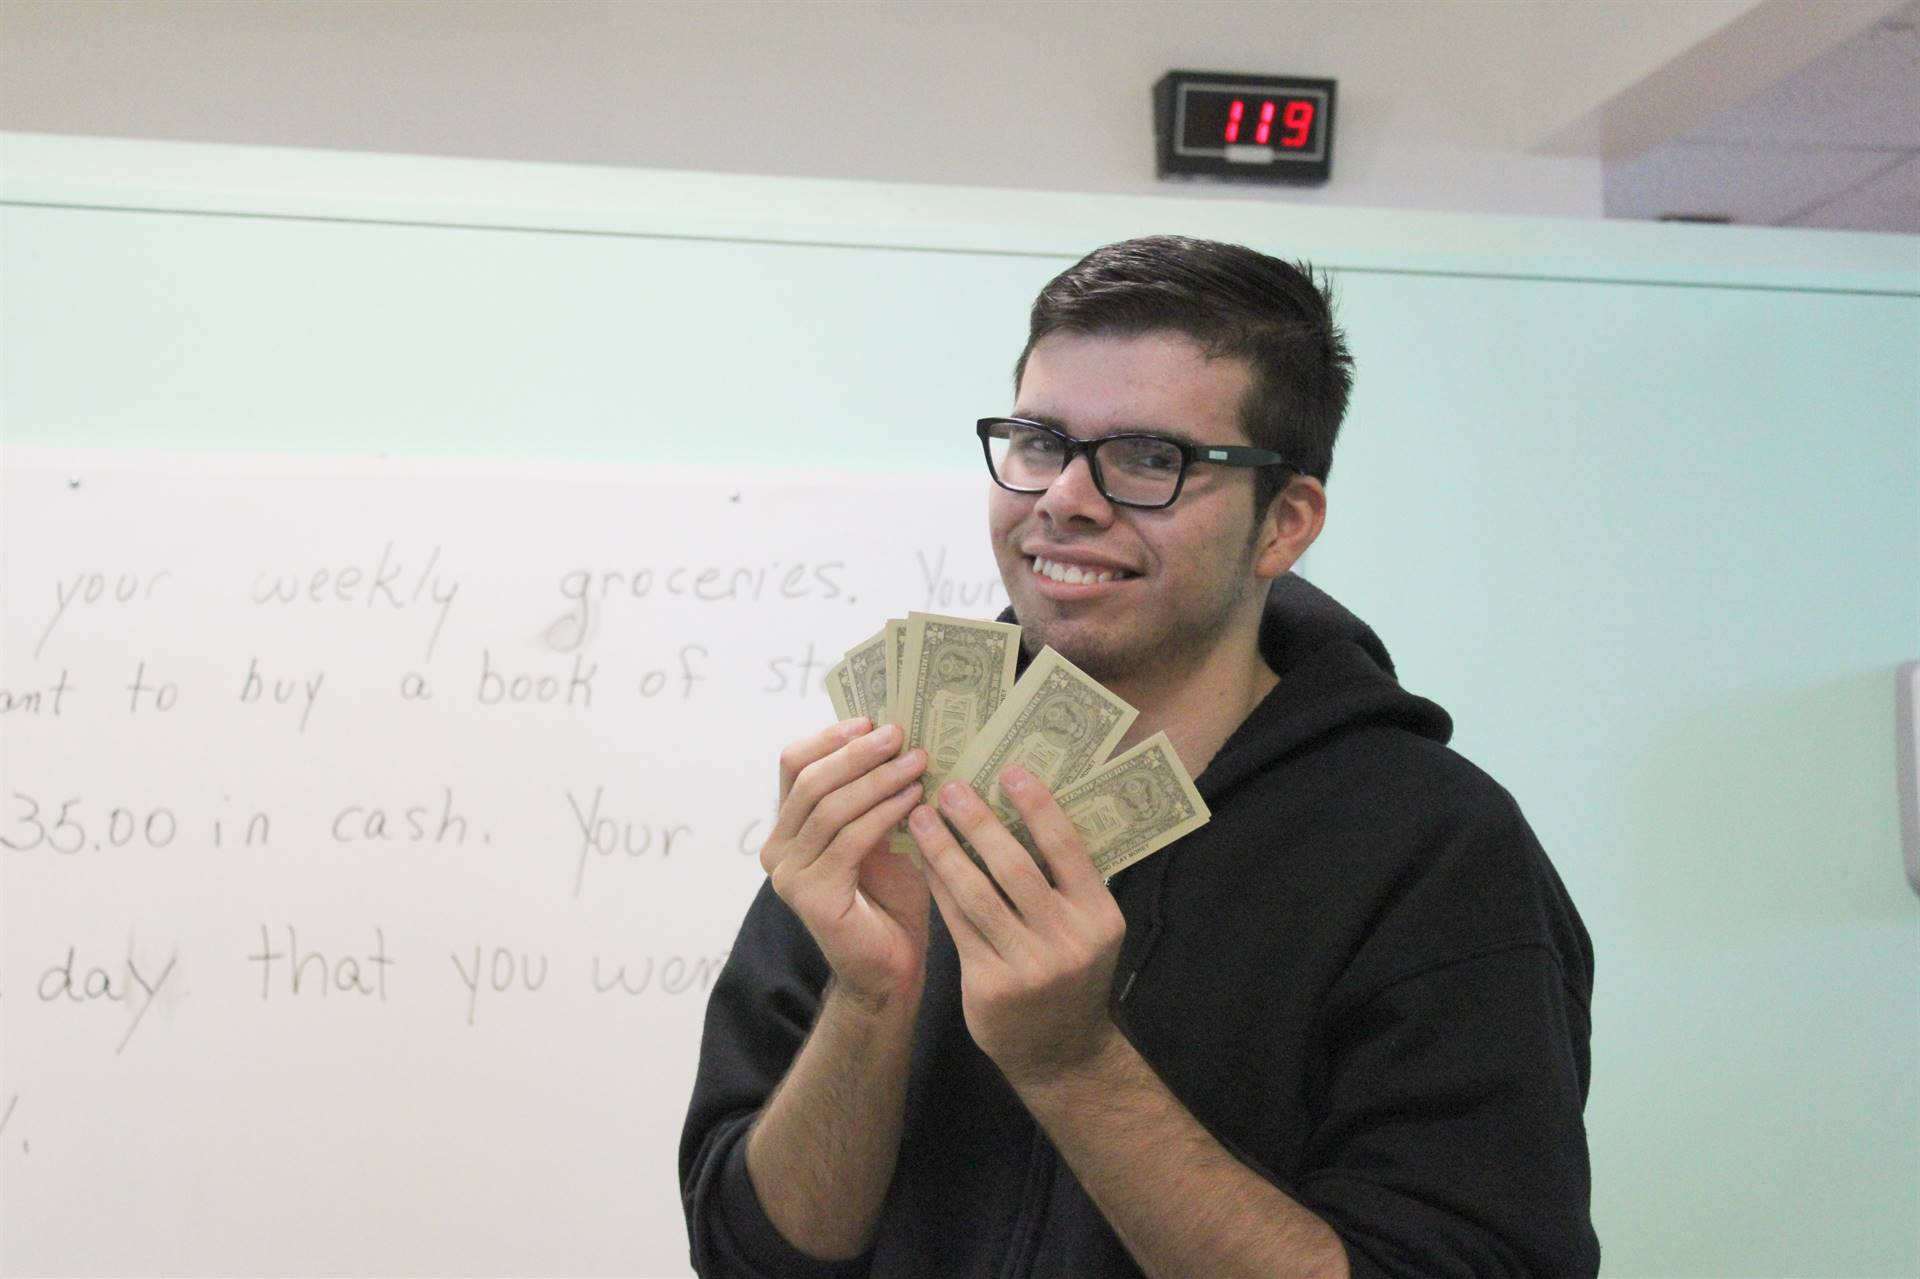 Learning how to manage money